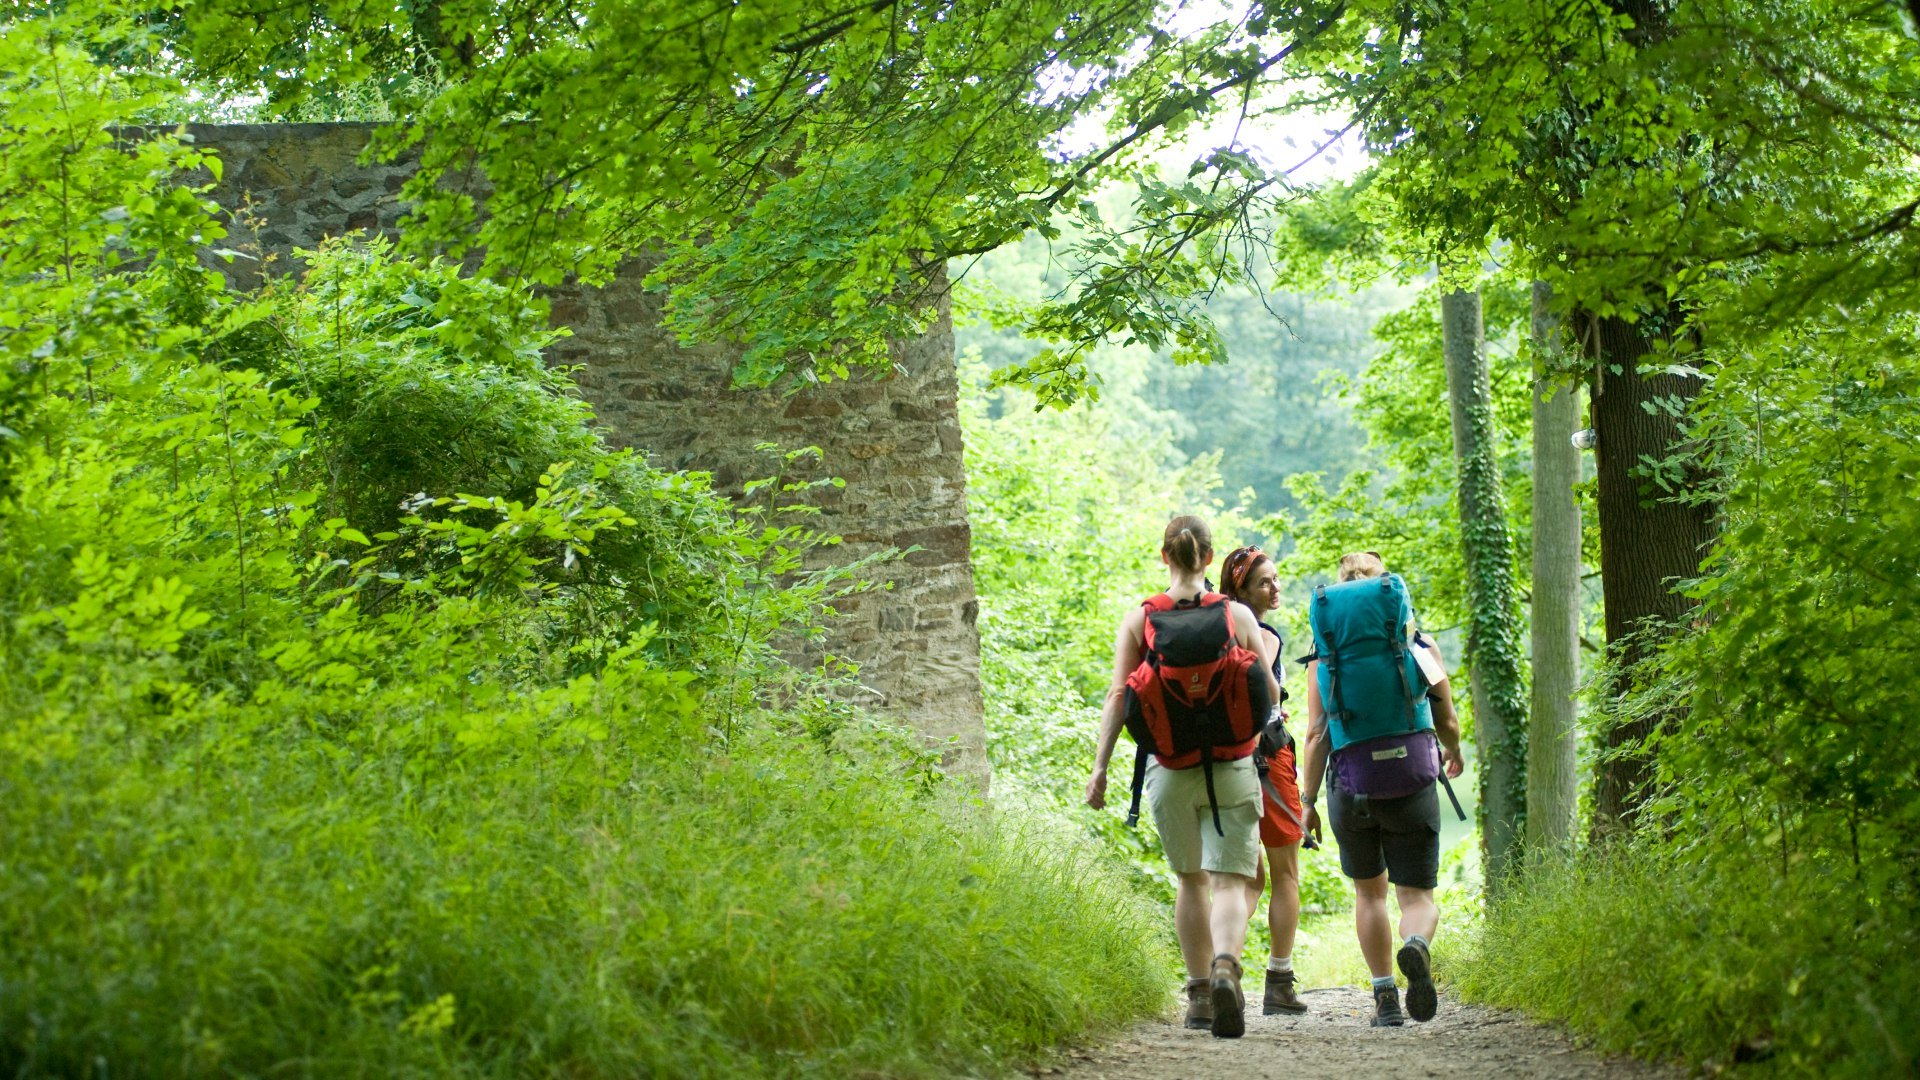 Hikers out in the open | © Dominik Ketz / Rheinland-Pfalz Tourismus GmbH